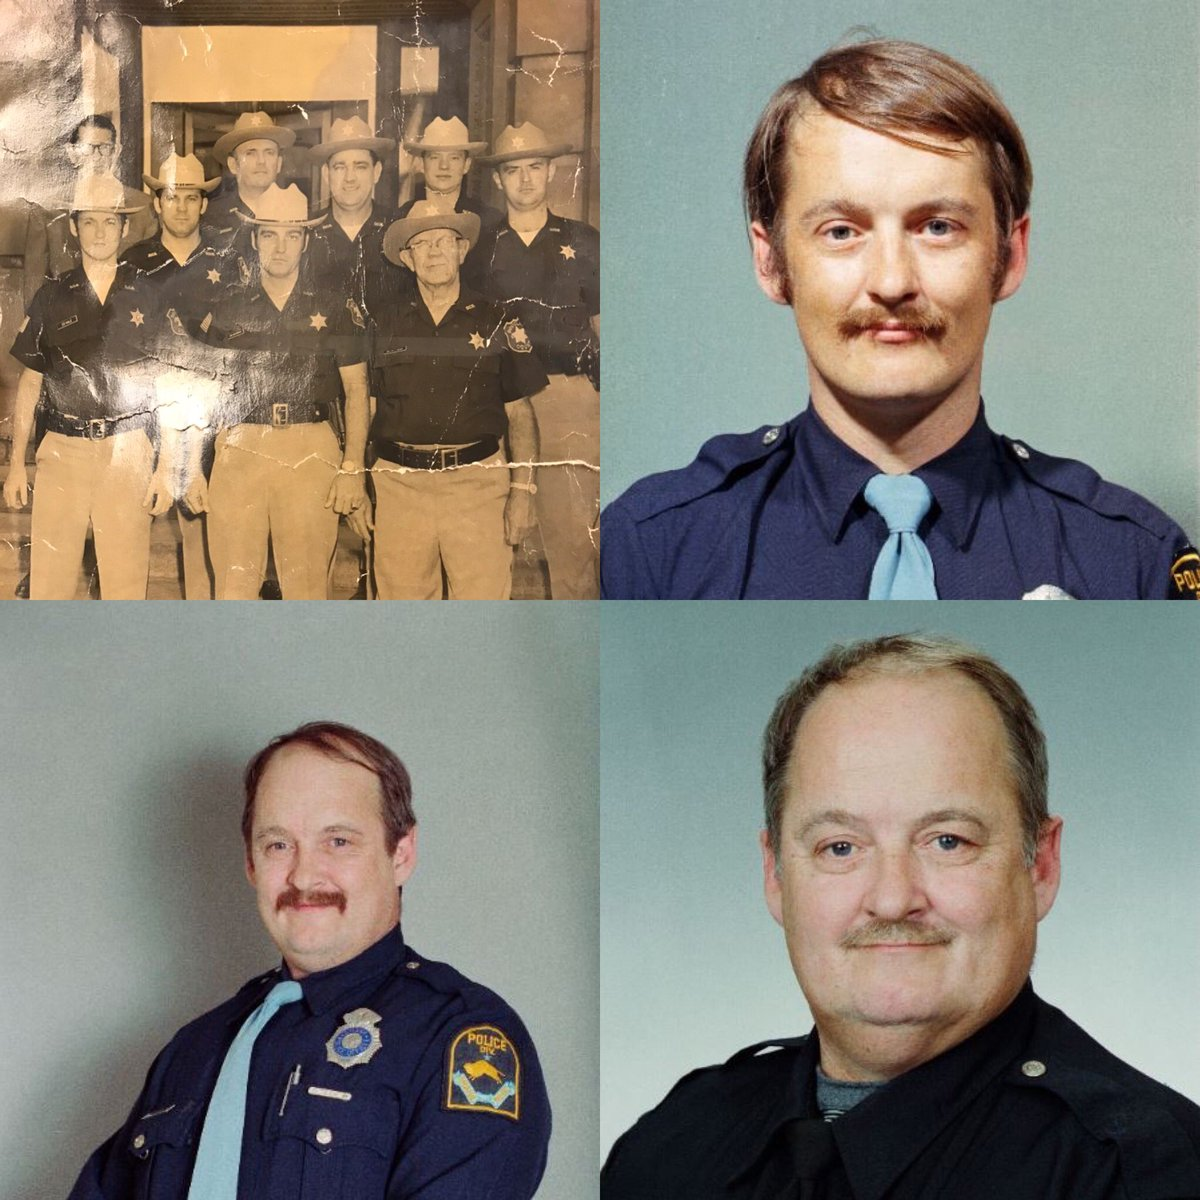 #OPD Ed Hale retired today after serving and protecting the Omaha community for 50 years! via @OPDOfcNickerson